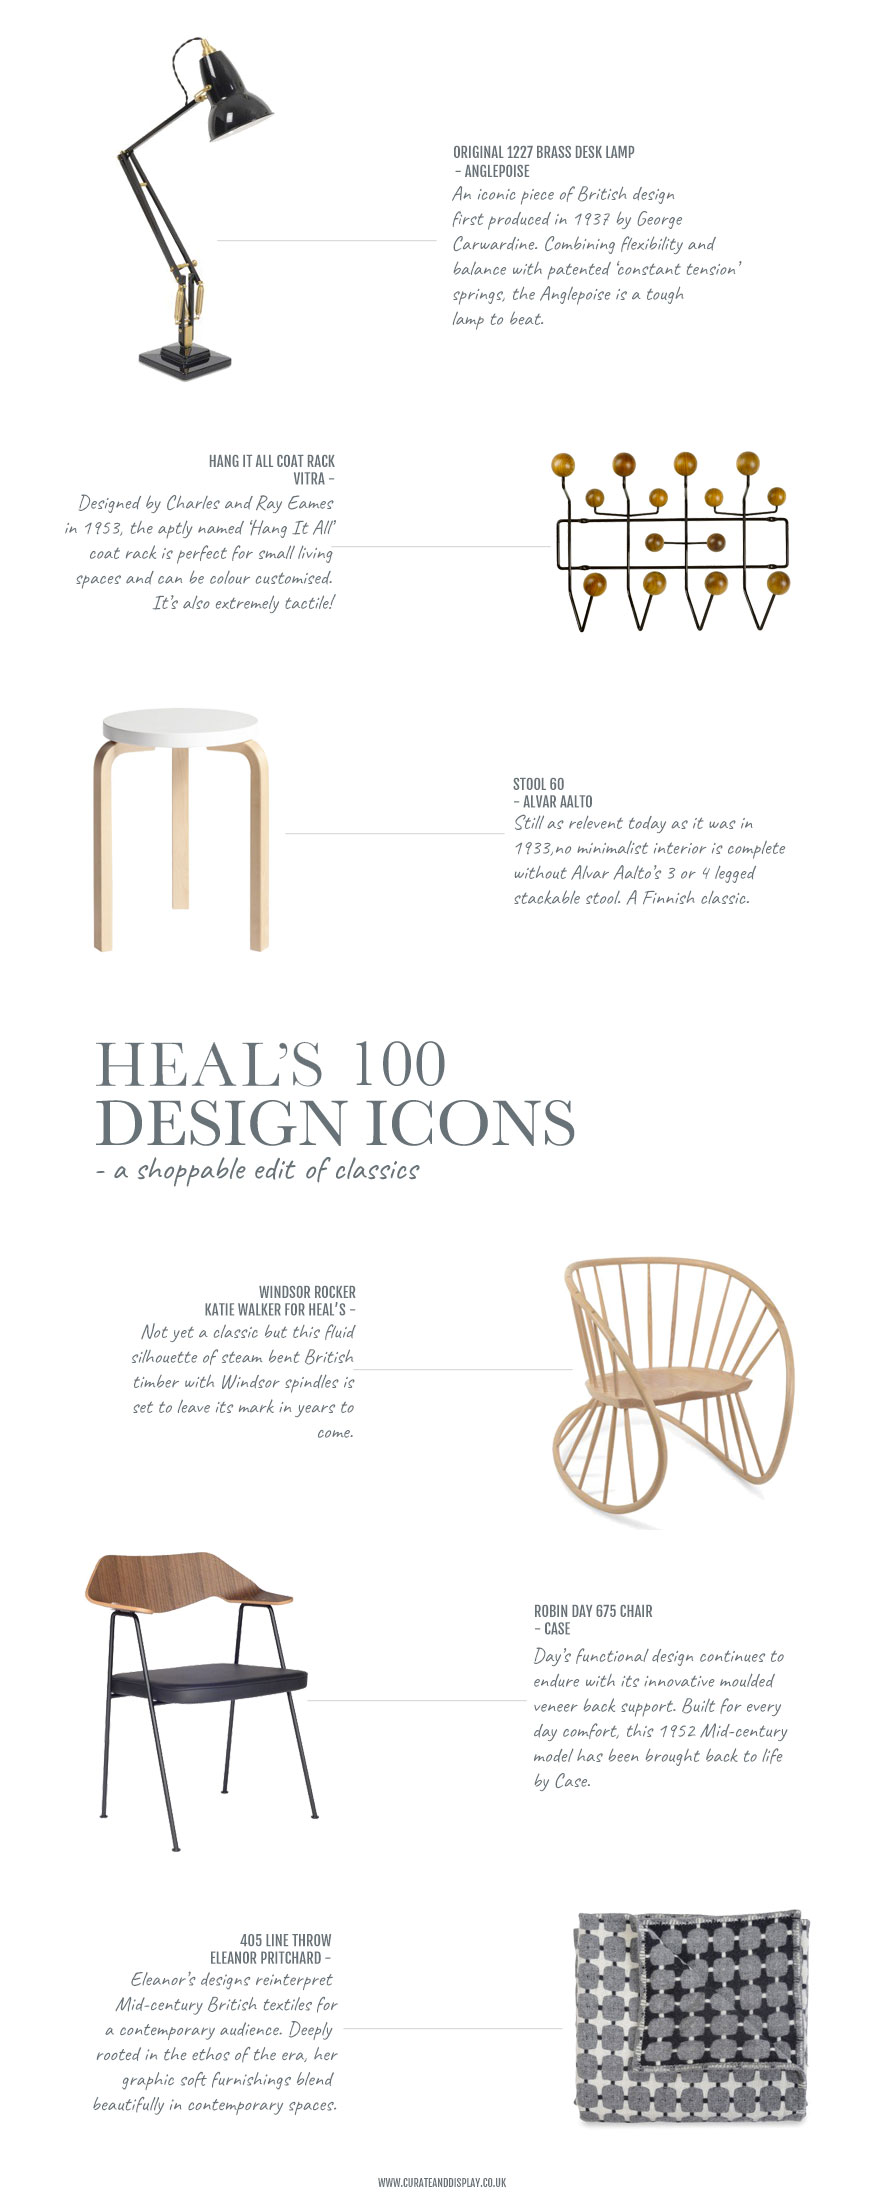 Heal's 100 design icons as chosen by Magnus Englund